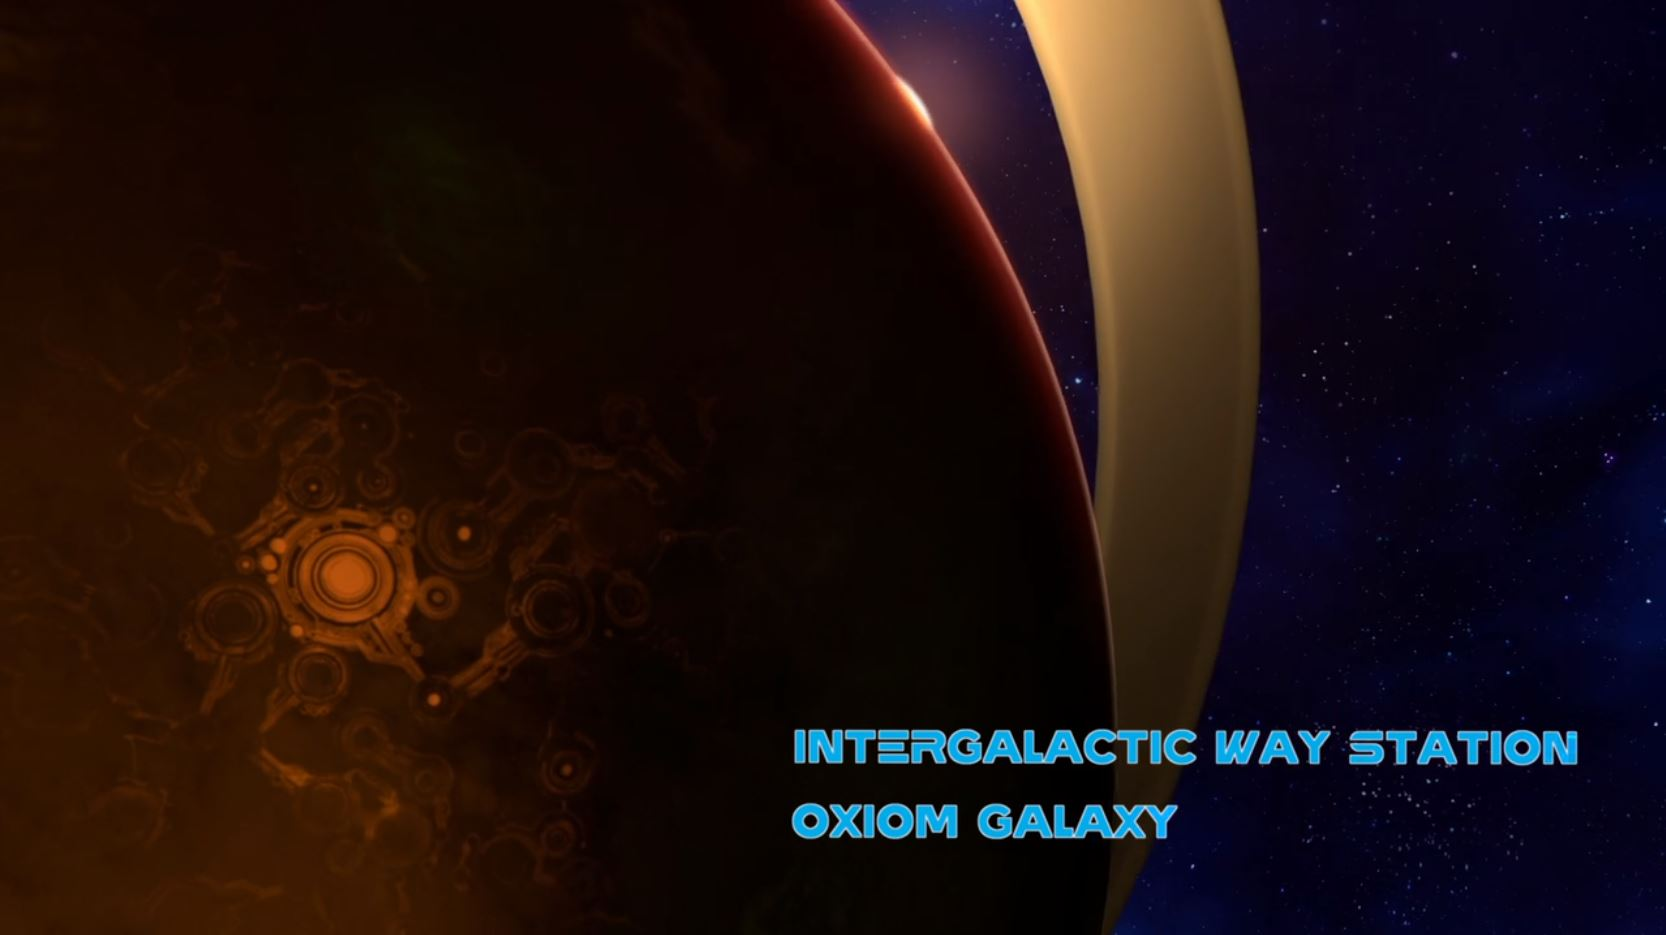 Intergalactic Way Station